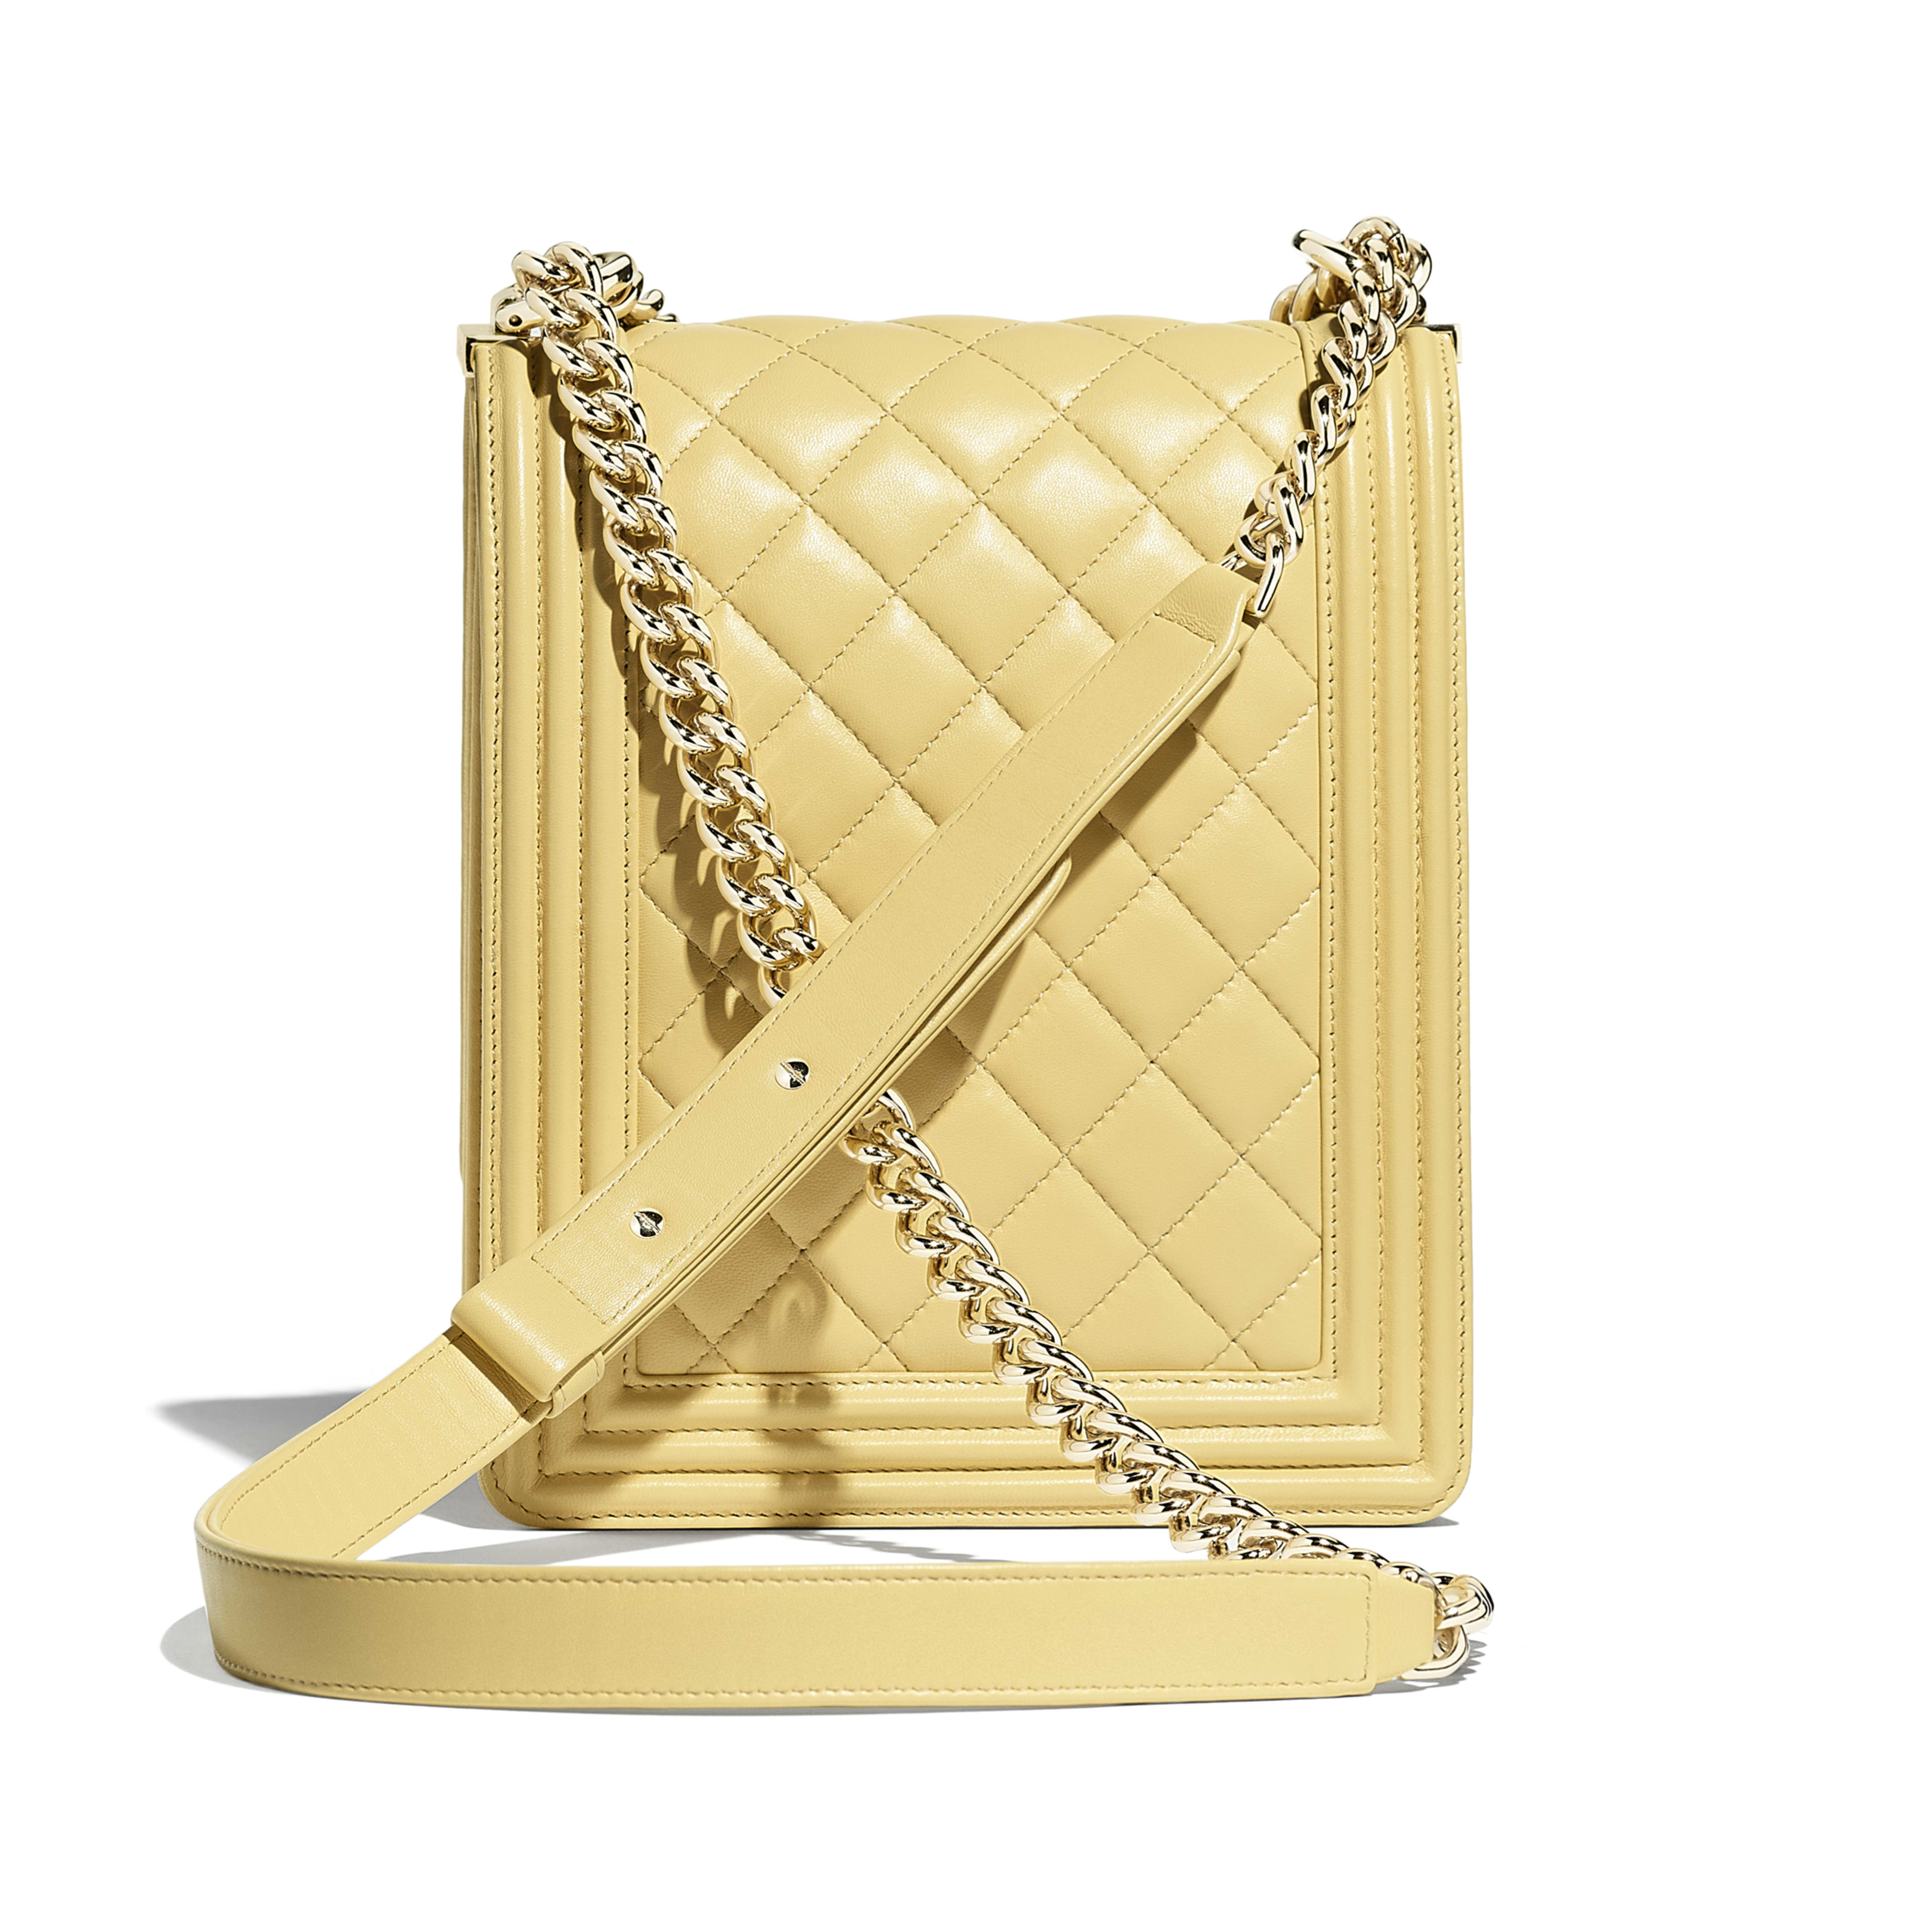 BOY CHANEL Handbag - Yellow - Calfskin & Gold-Tone Metal - Alternative view - see full sized version